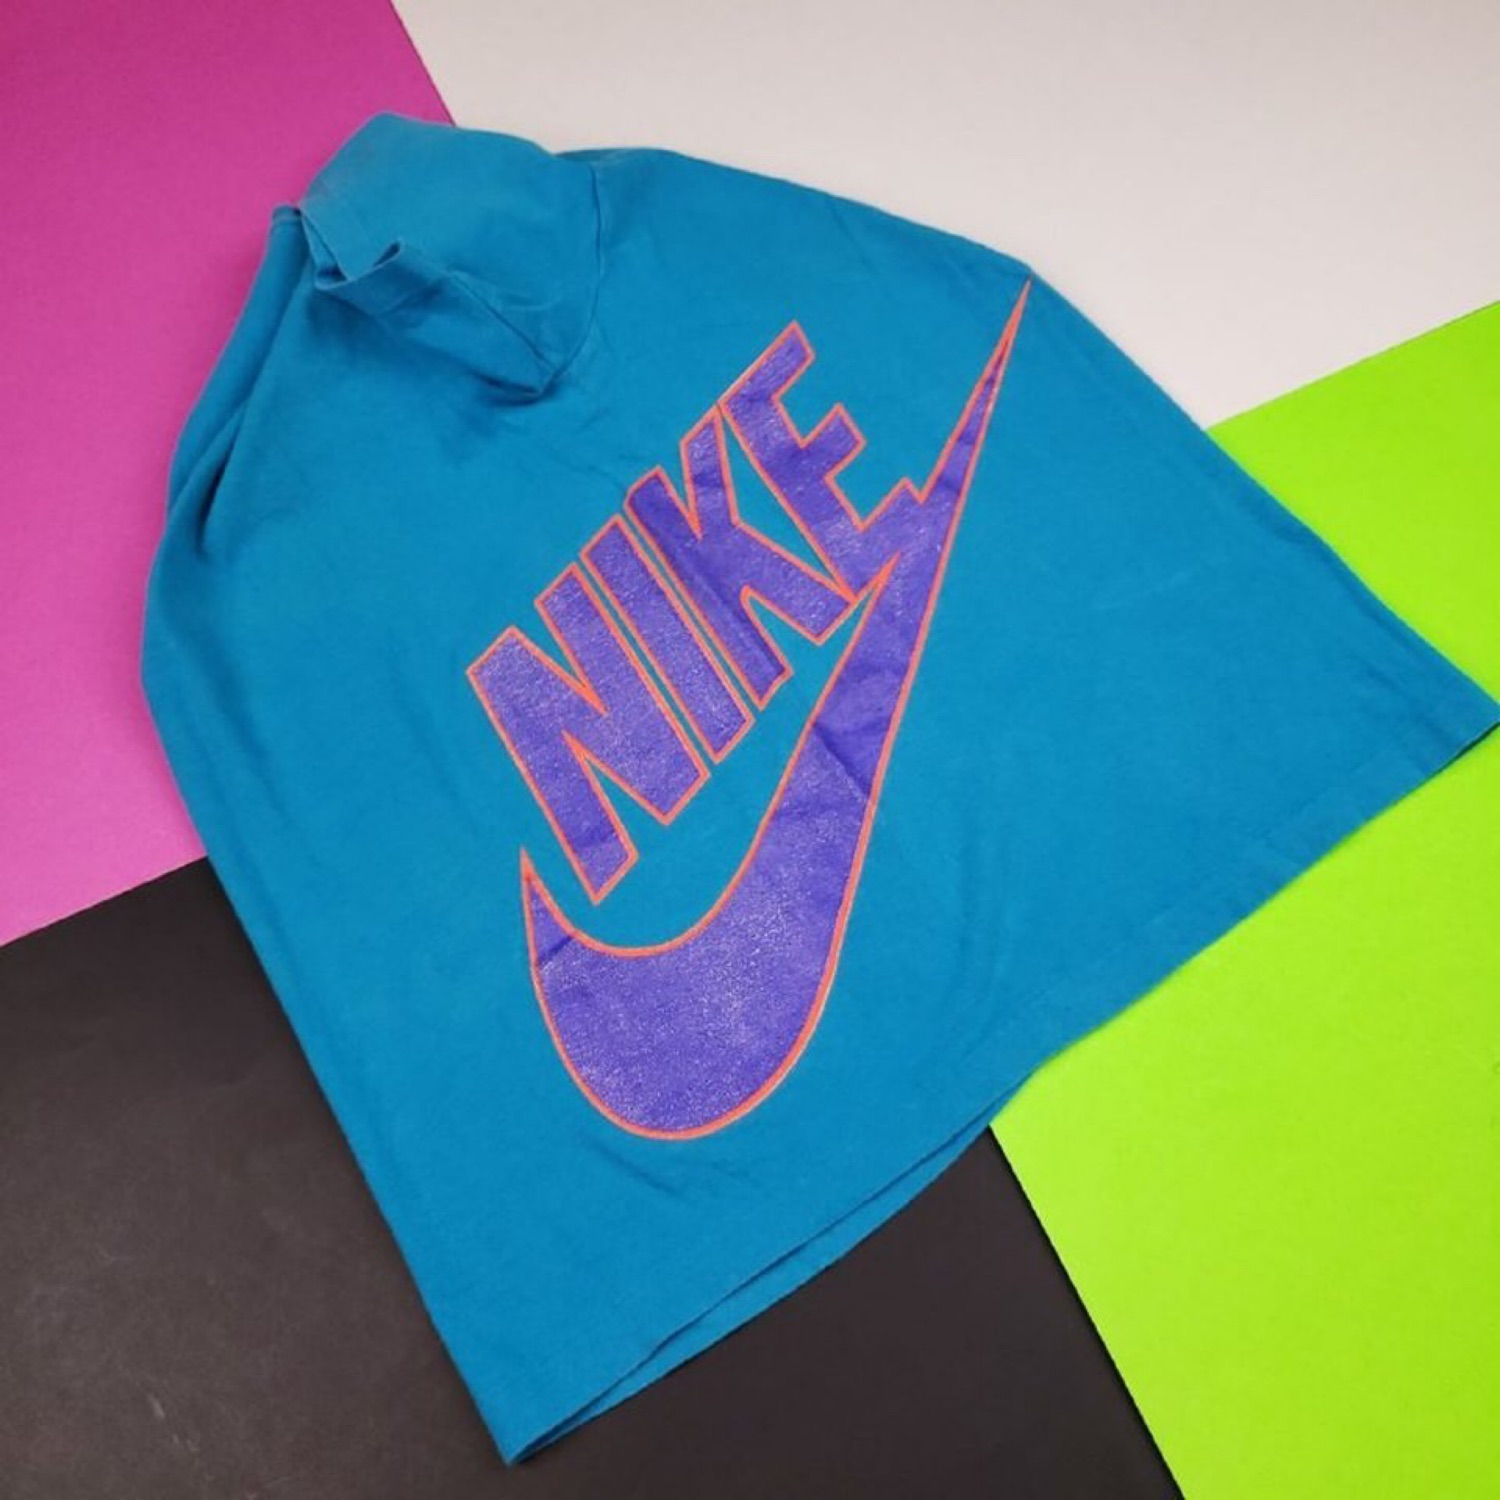 Rare Vintage 80'S Nike 'Just Do It' Tee